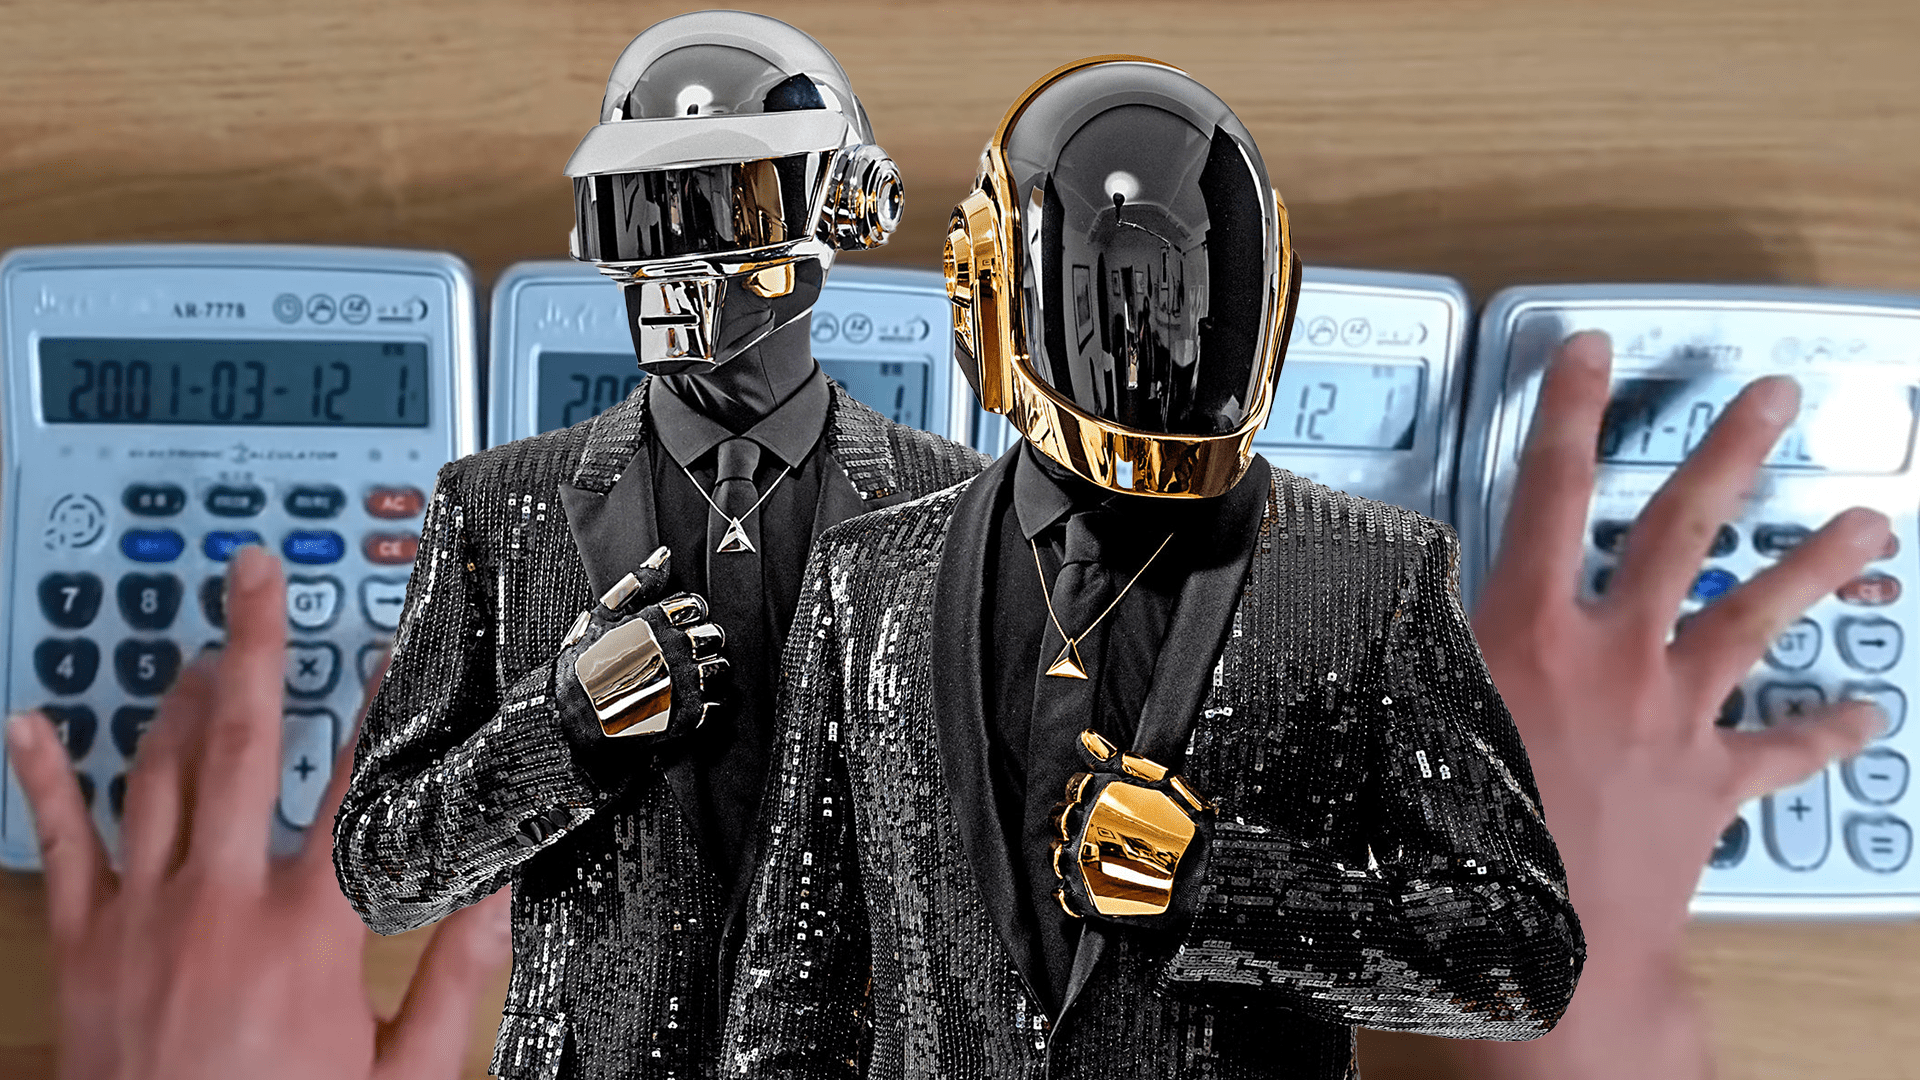 Calculator & Daft Punk